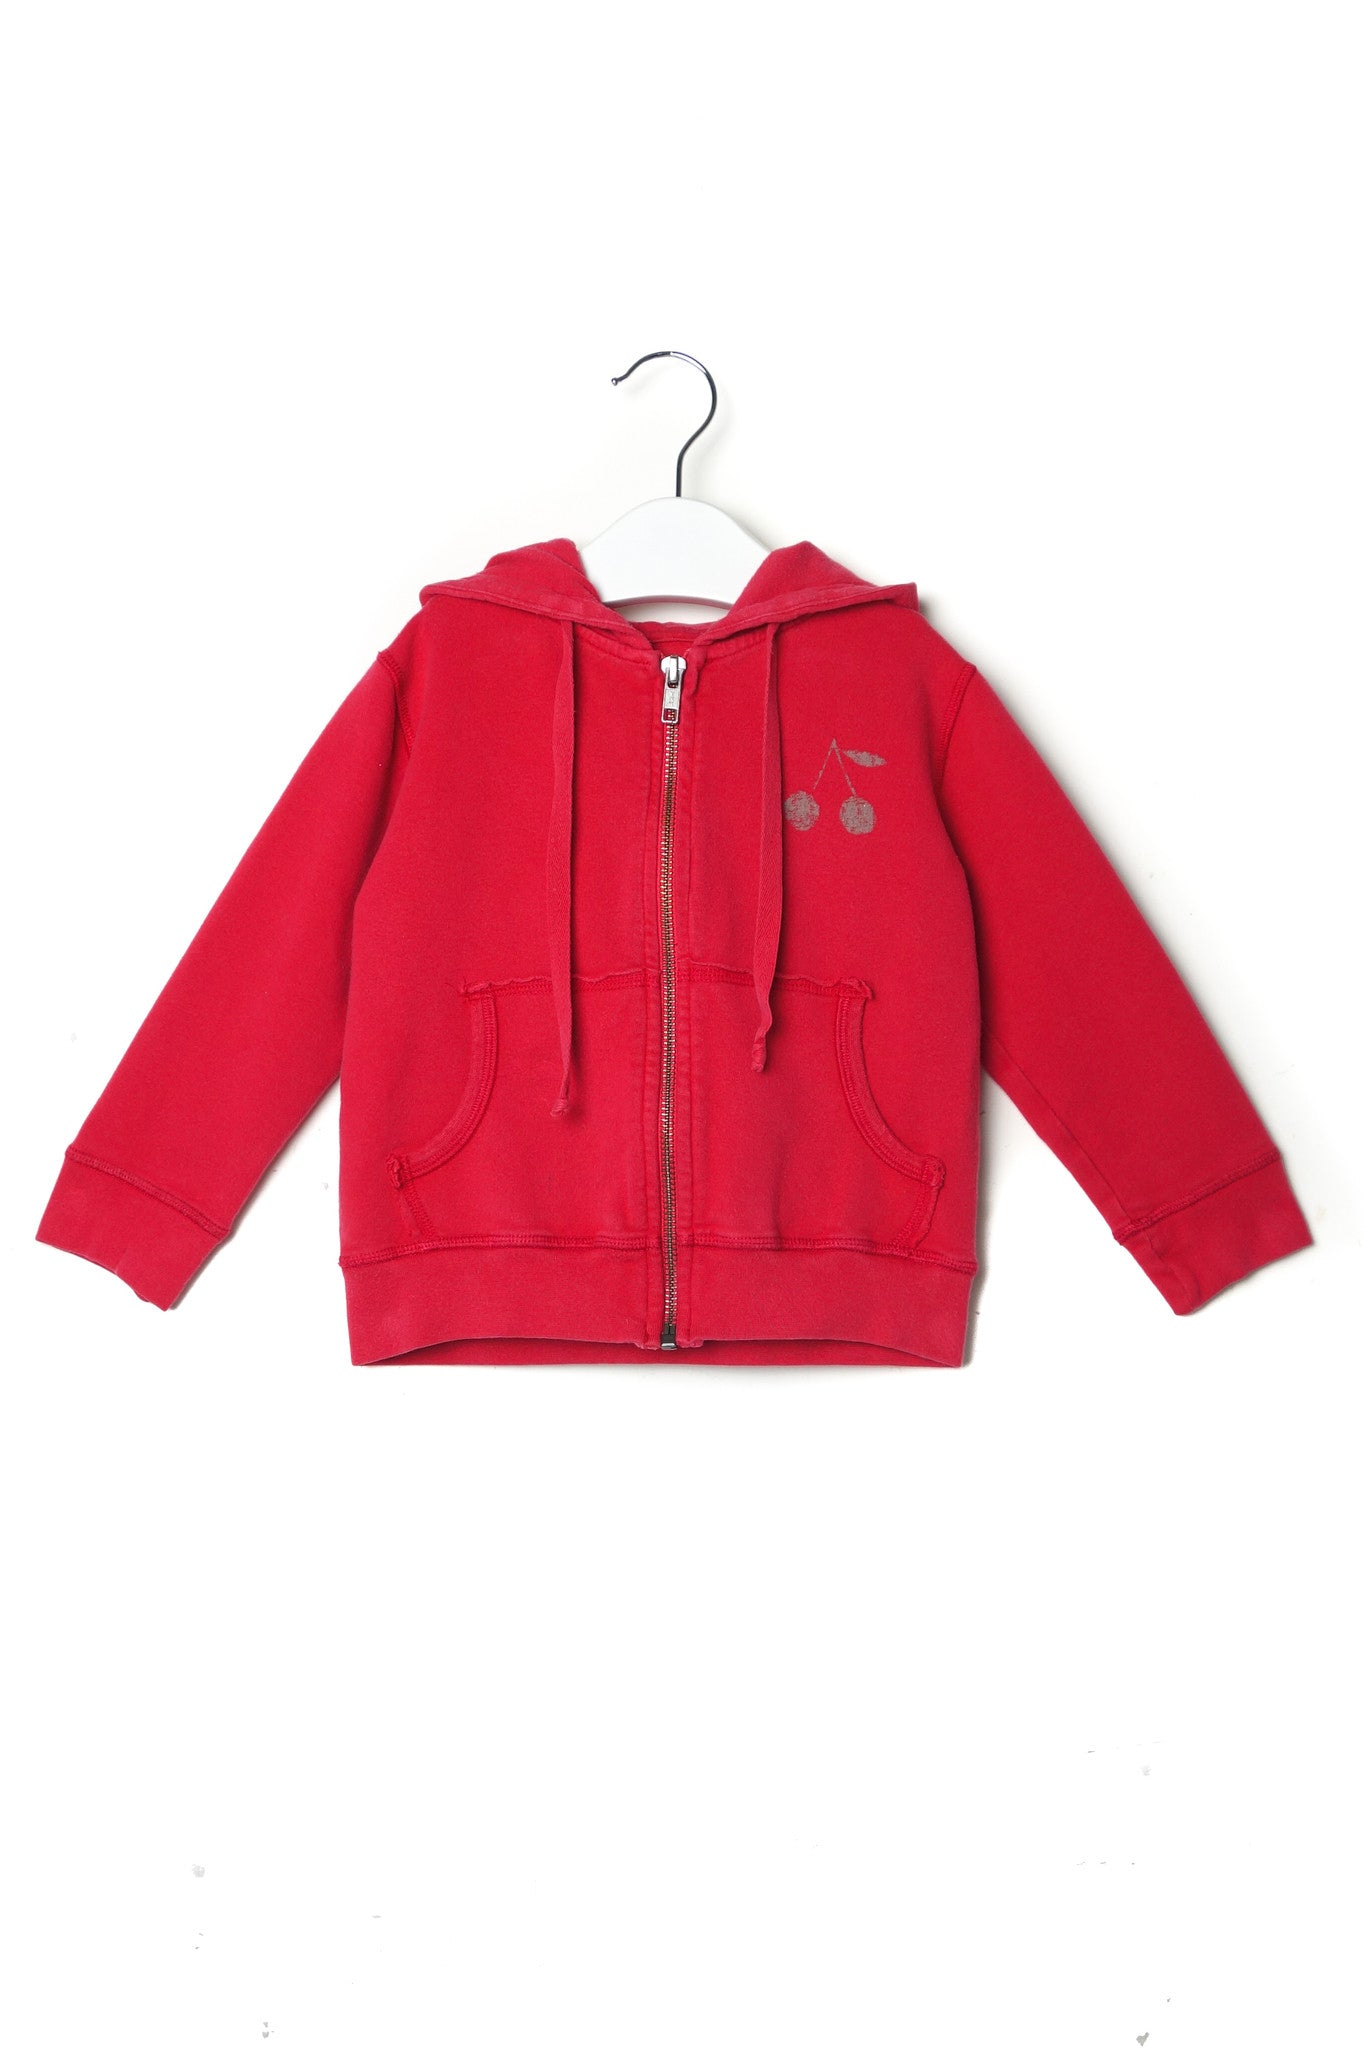 10002300 Bonpoint Kids~Sweatshirt 3T at Retykle